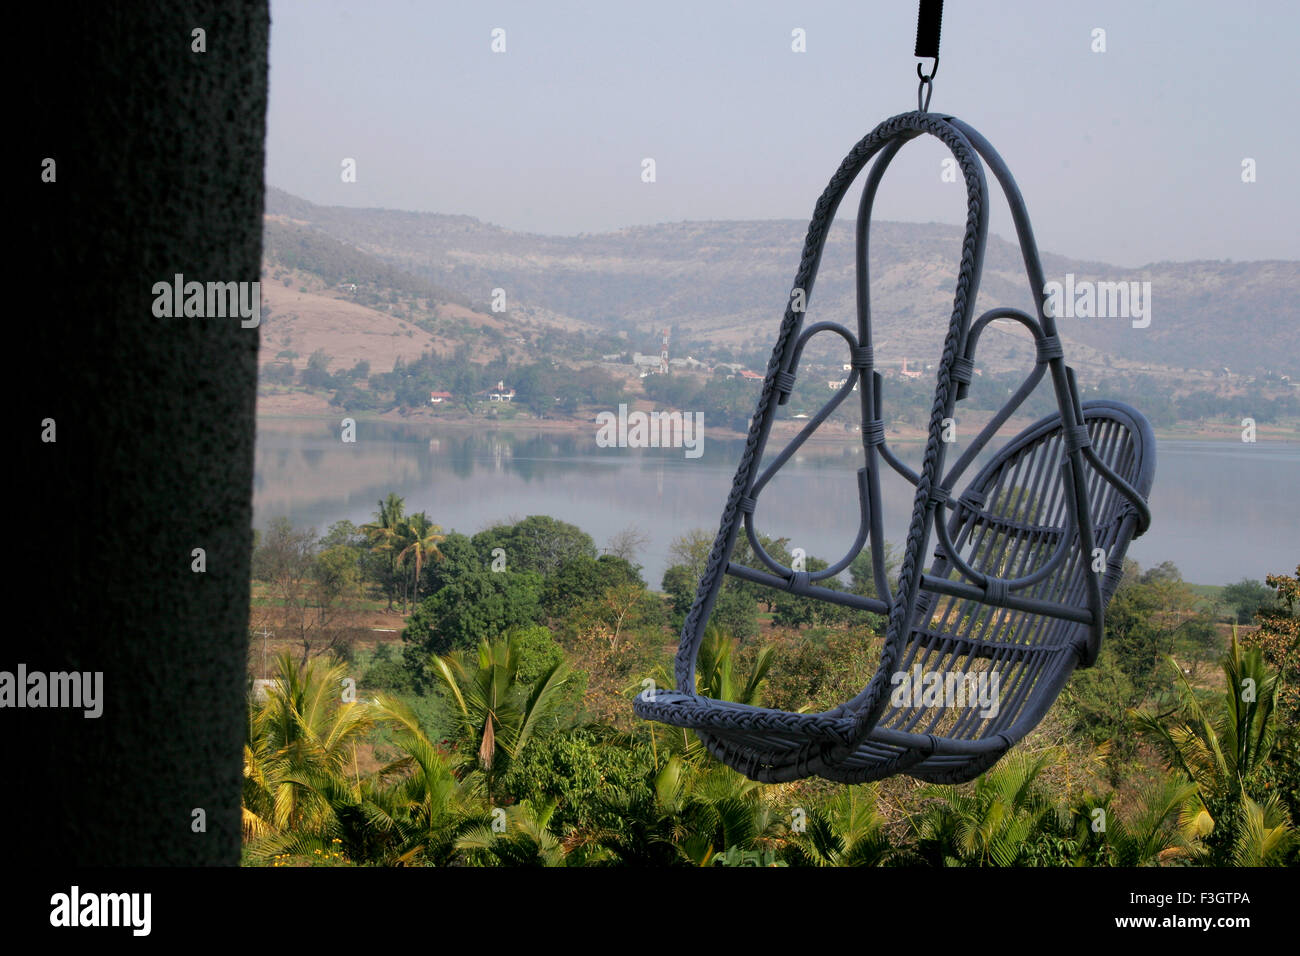 swing chair sri lanka extra large beach chairs cane furniture stock photos and images